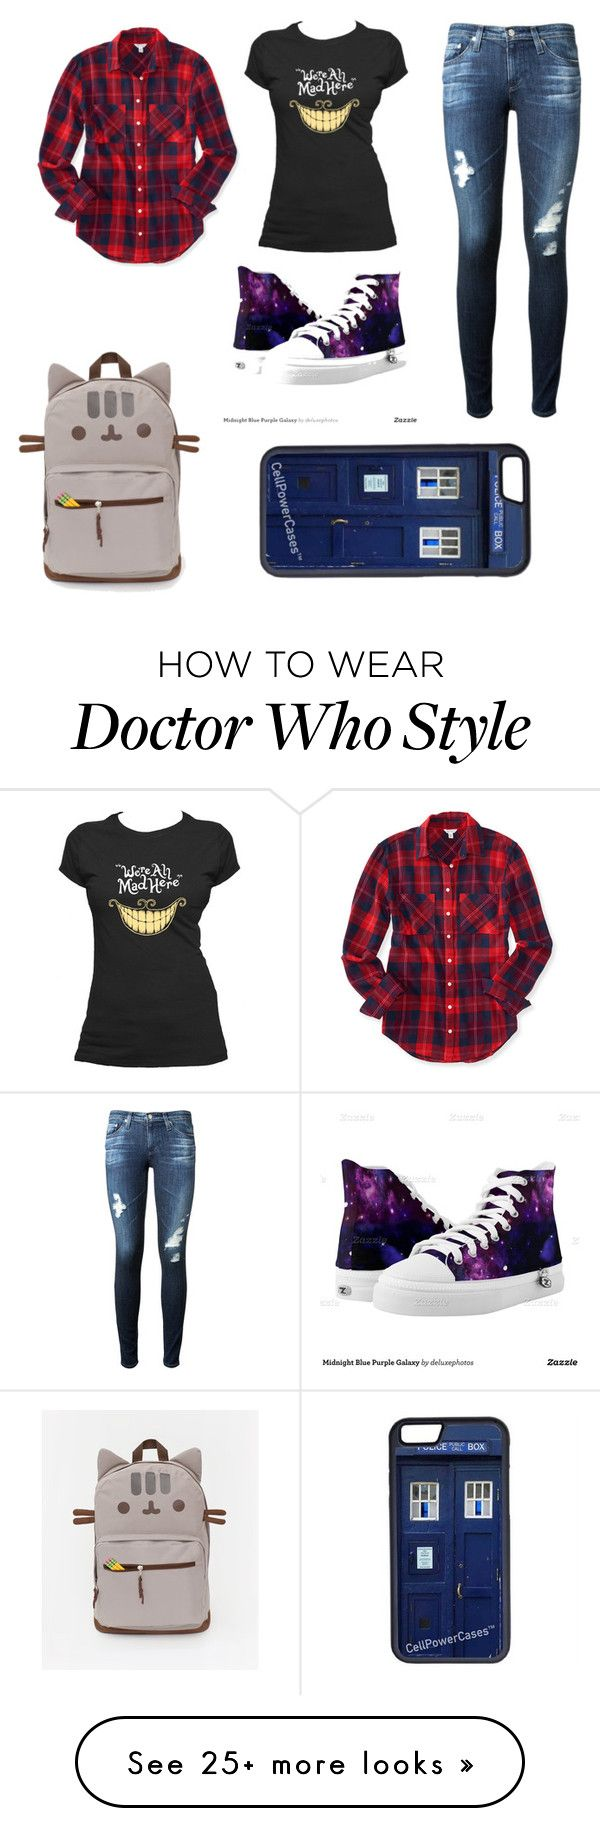 """School day"" by harlequinbunny on Polyvore featuring Aéropostale, AG Adriano Goldschmied and CellPowerCases"